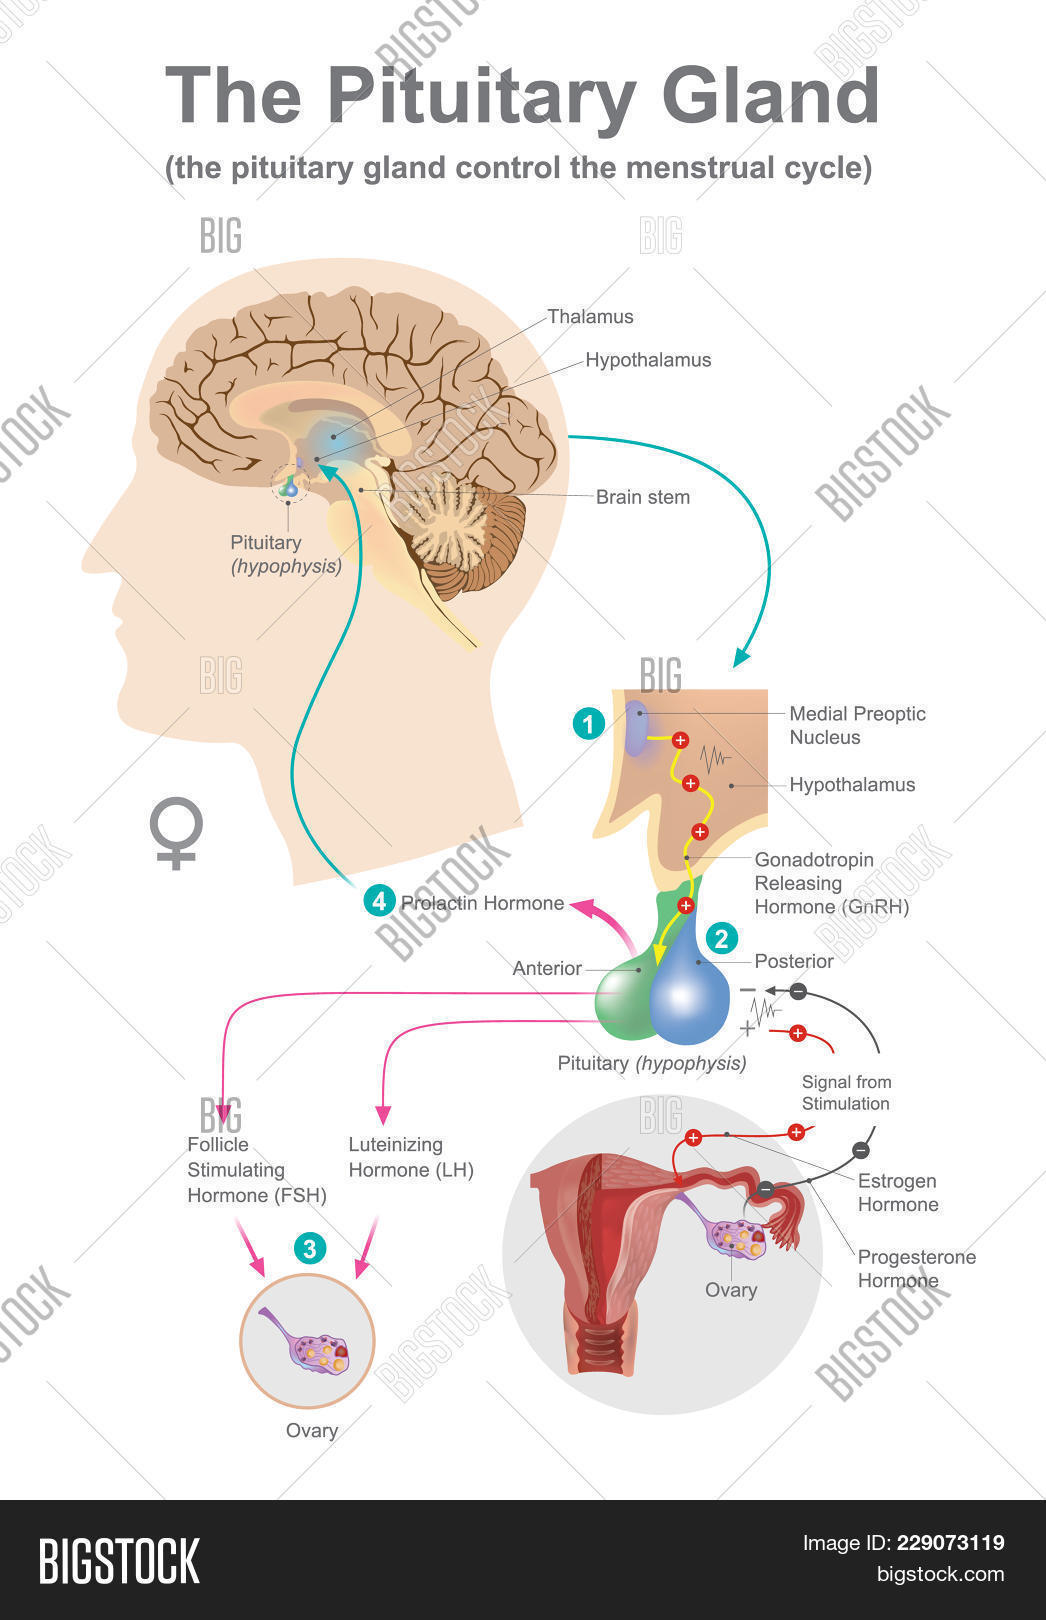 Pituitary Gland. Image & Photo (Free Trial) | Bigstock